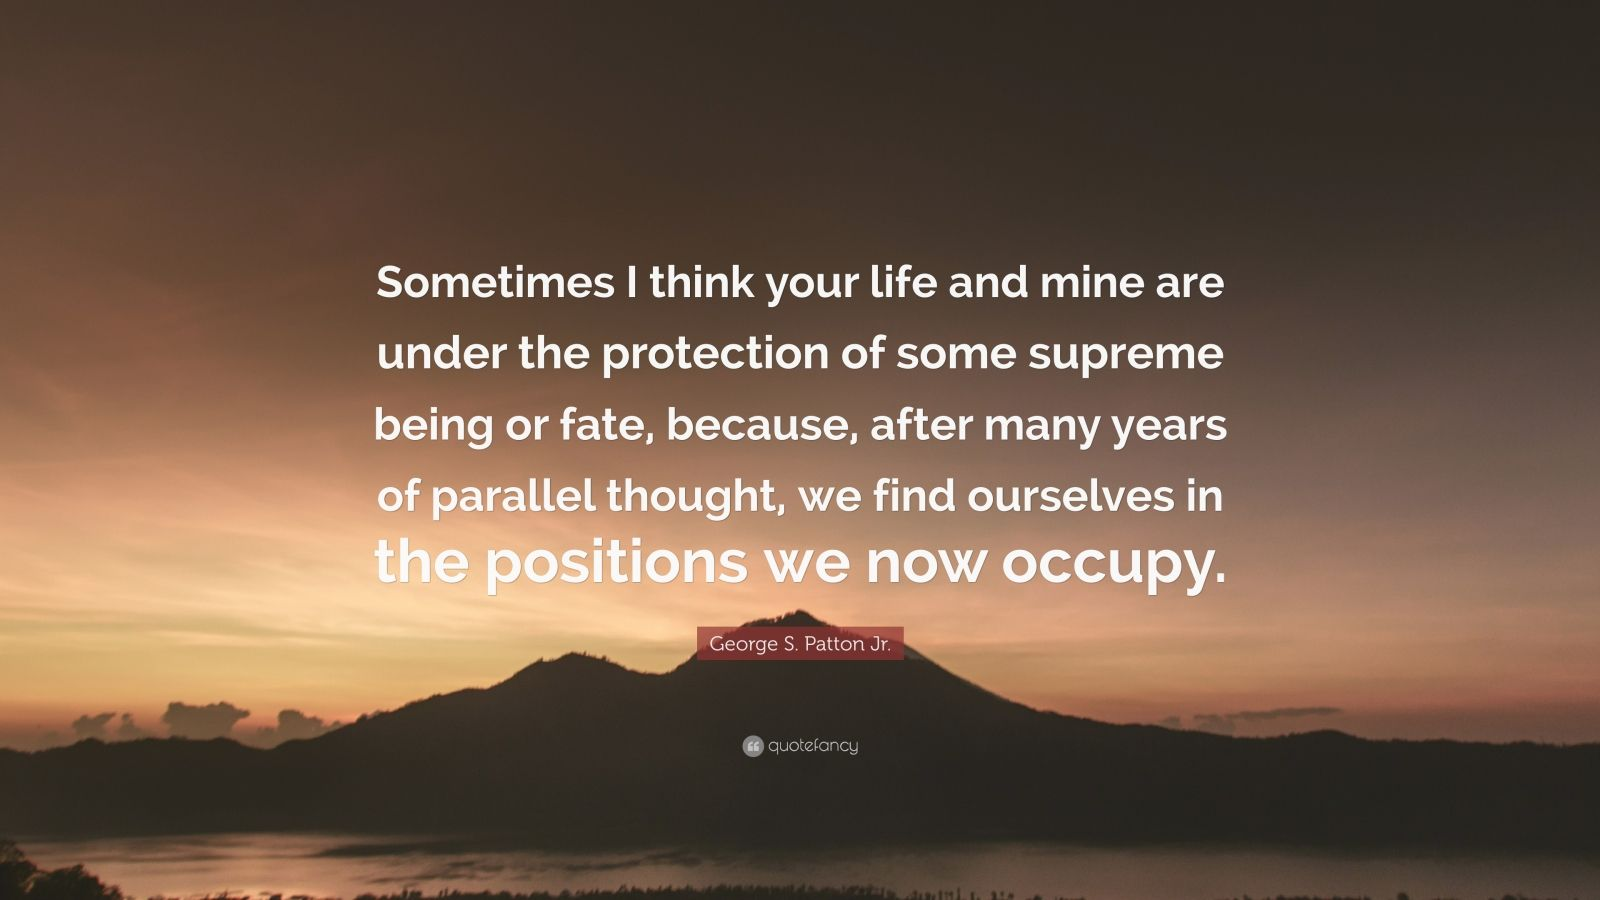 """George S. Patton Jr. Quote: """"Sometimes I think your life and mine are under the protection of some supreme being or fate, because, after many years of parallel thought, we find ourselves in the positions we now occupy."""""""